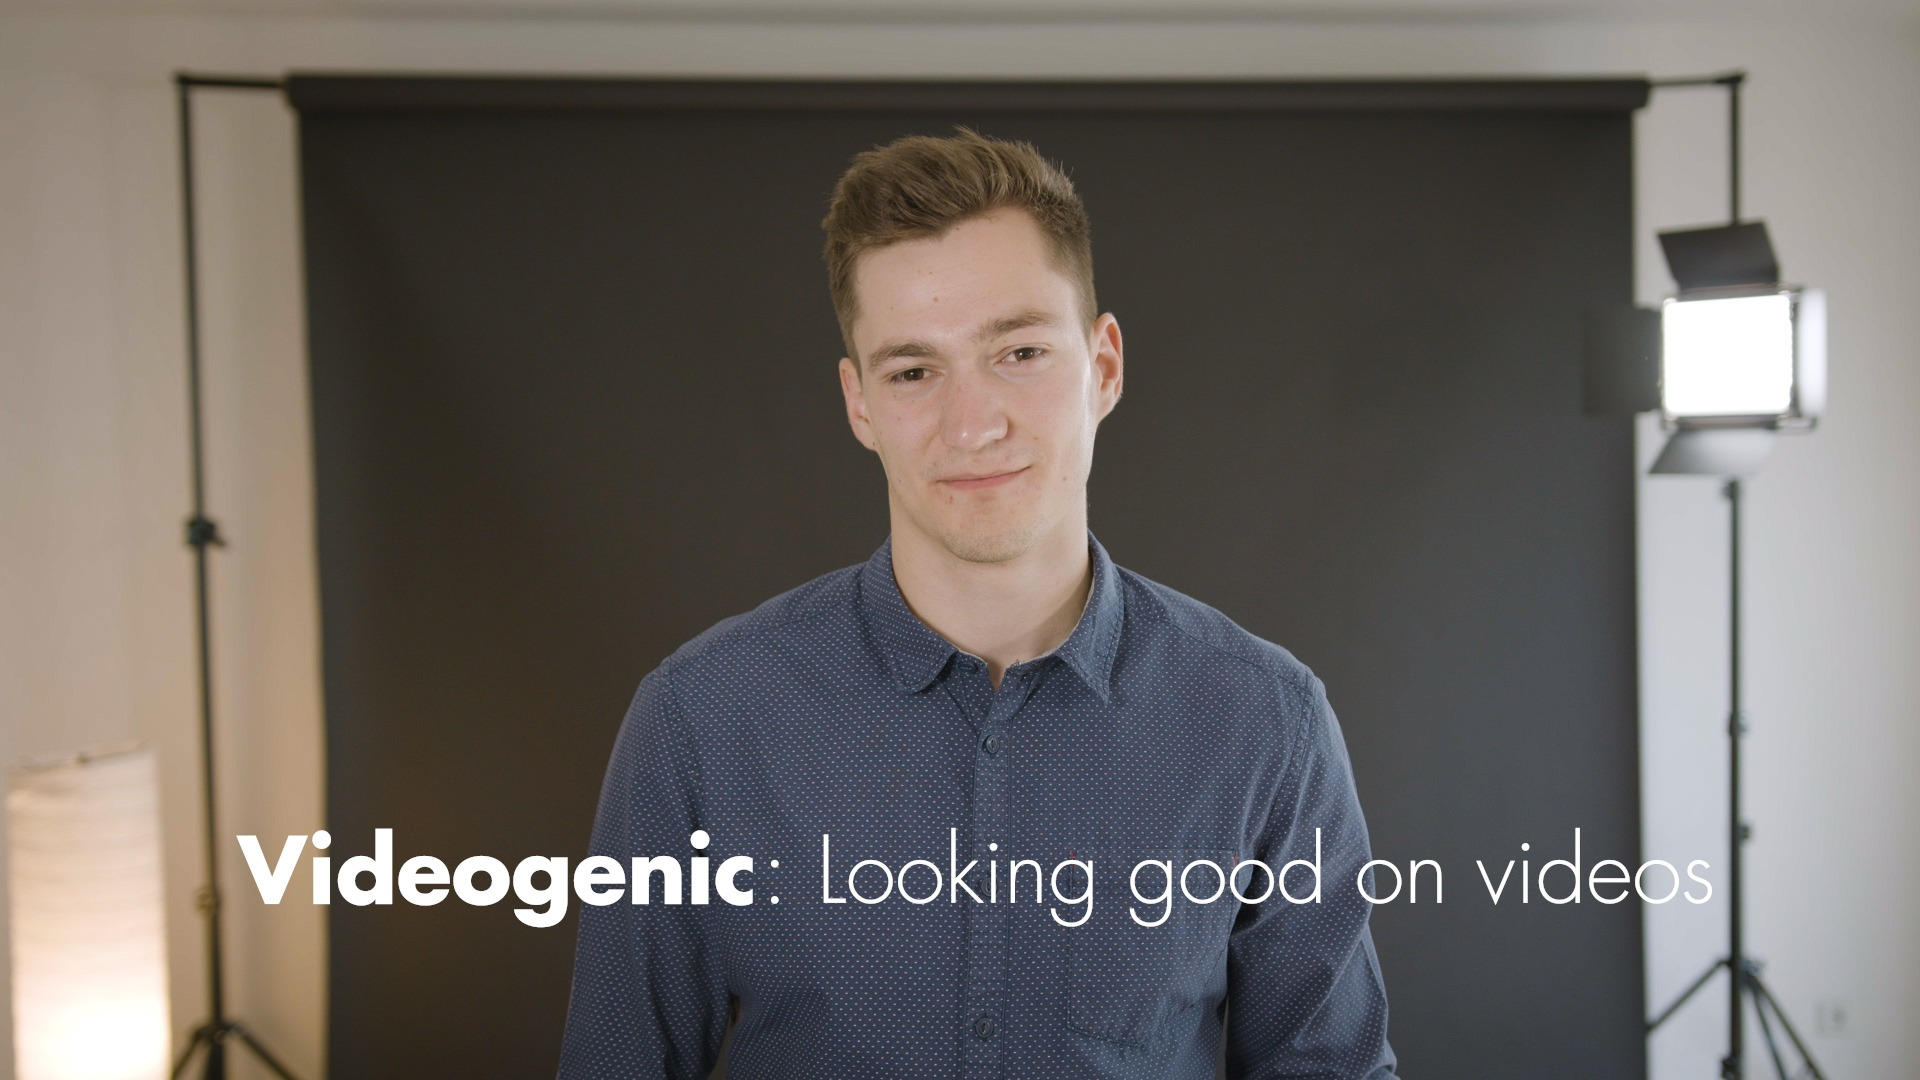 videogenic : looking good on videos